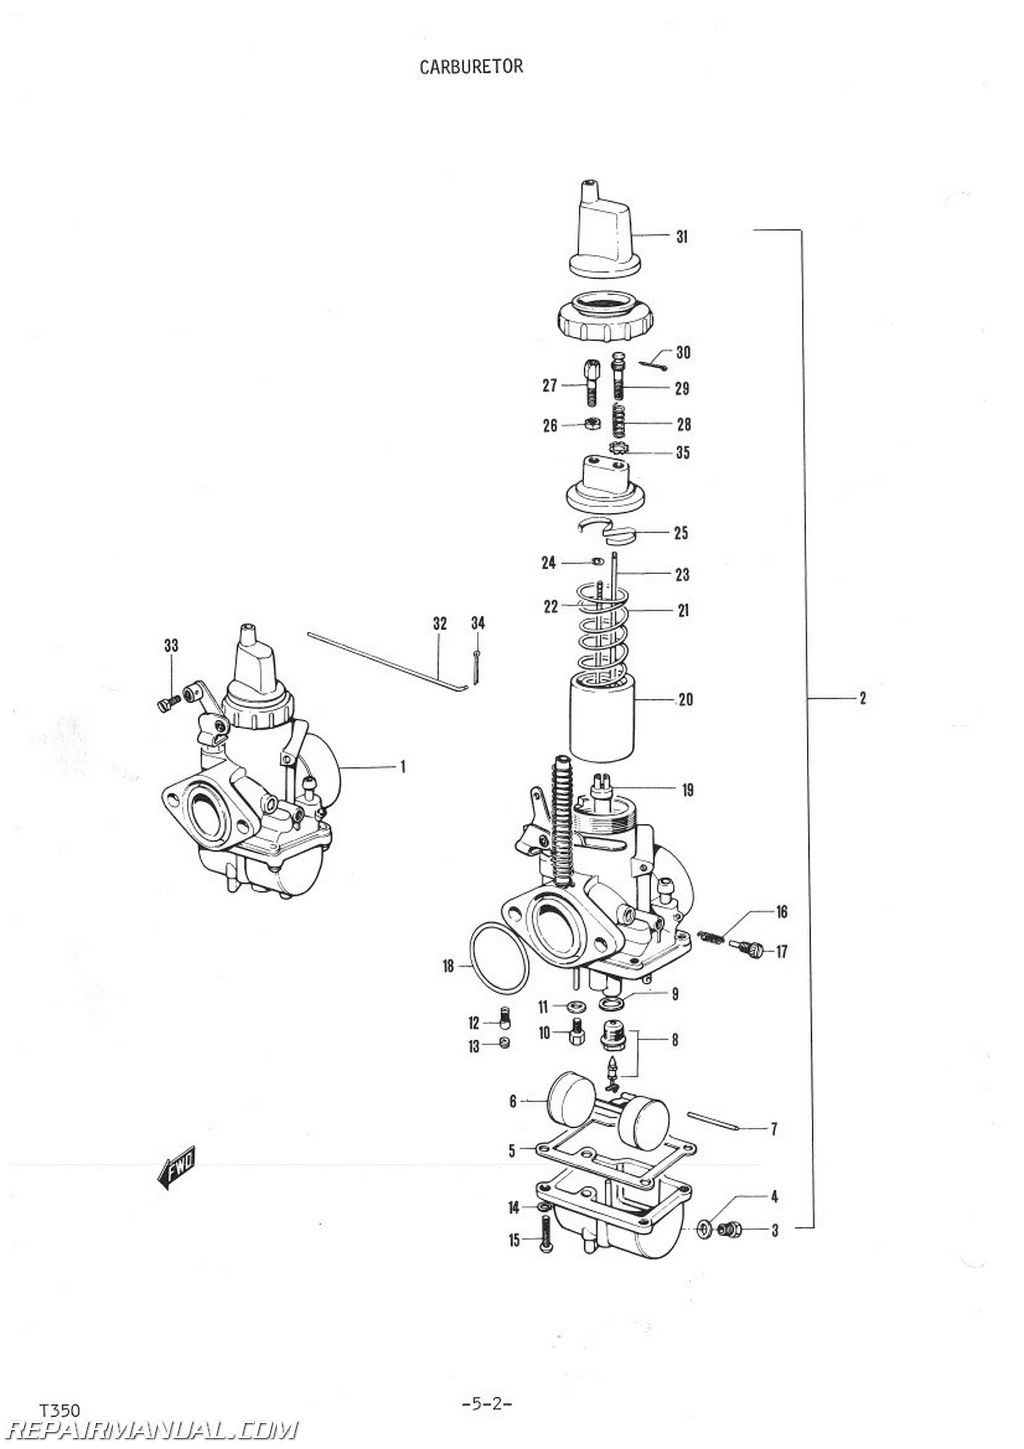 1972 Suzuki T350 Parts Manual